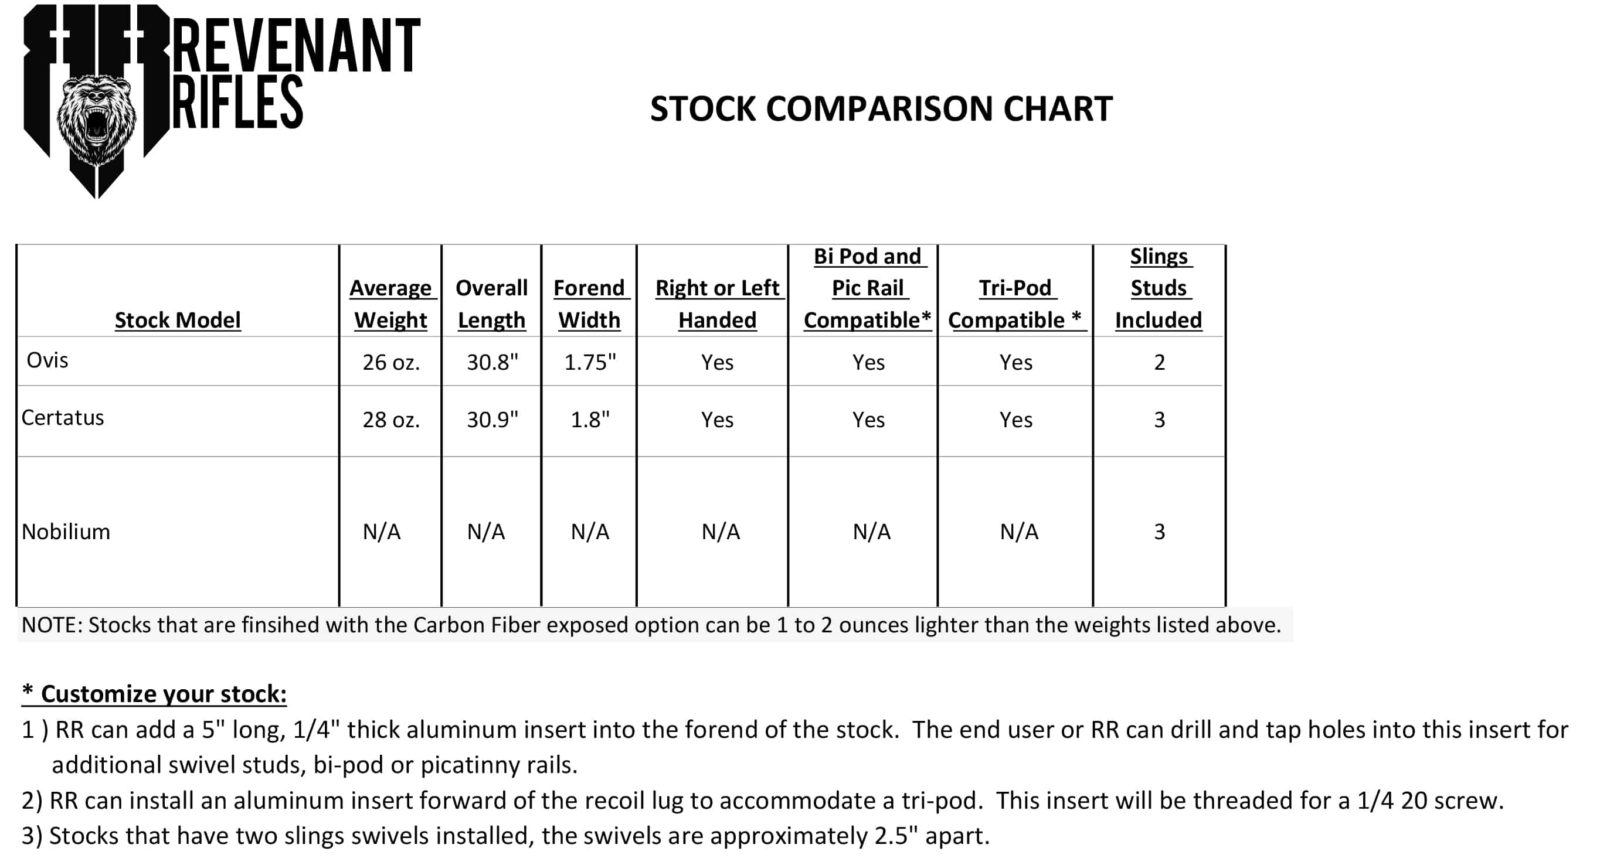 Revenant Rifles Stock Comparison Chart Vers2.1_PDF